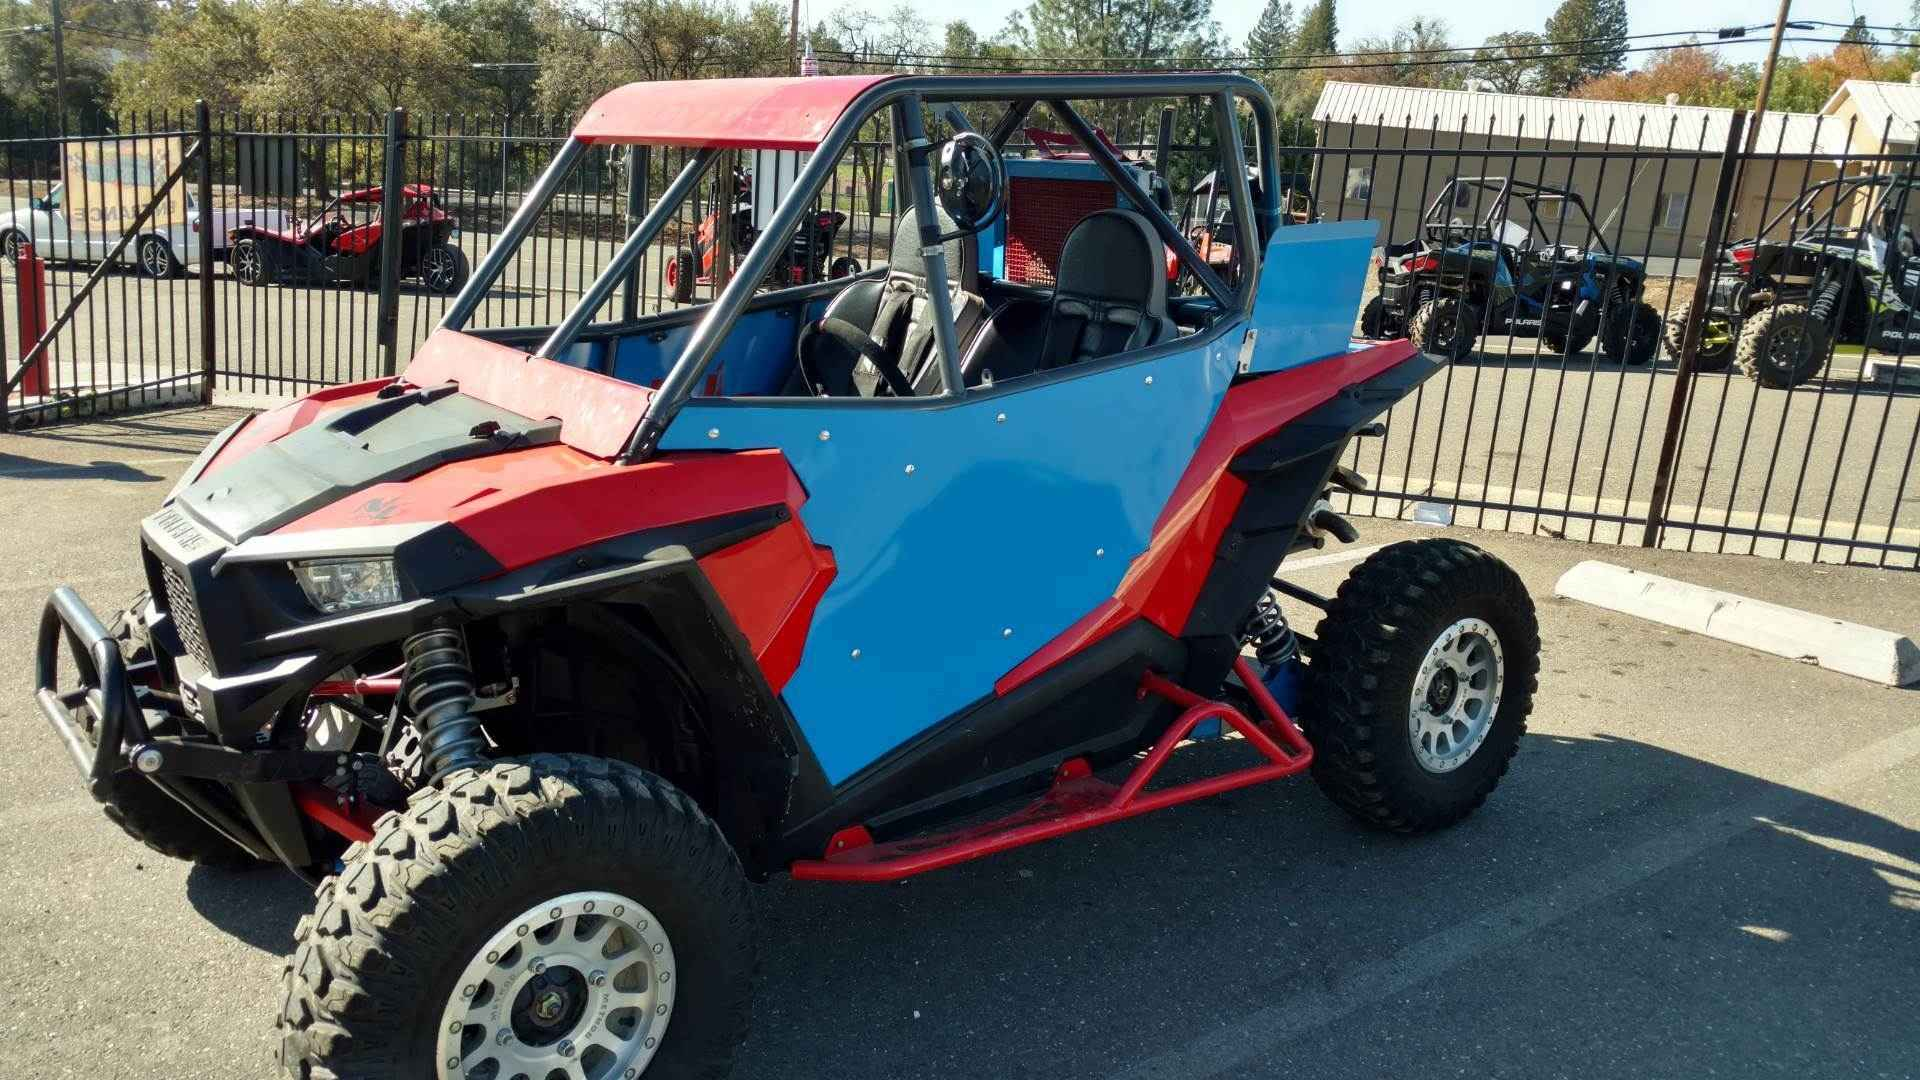 used 2015 polaris rzr xp 1000 eps atvs for sale in california on atv trades. Black Bedroom Furniture Sets. Home Design Ideas